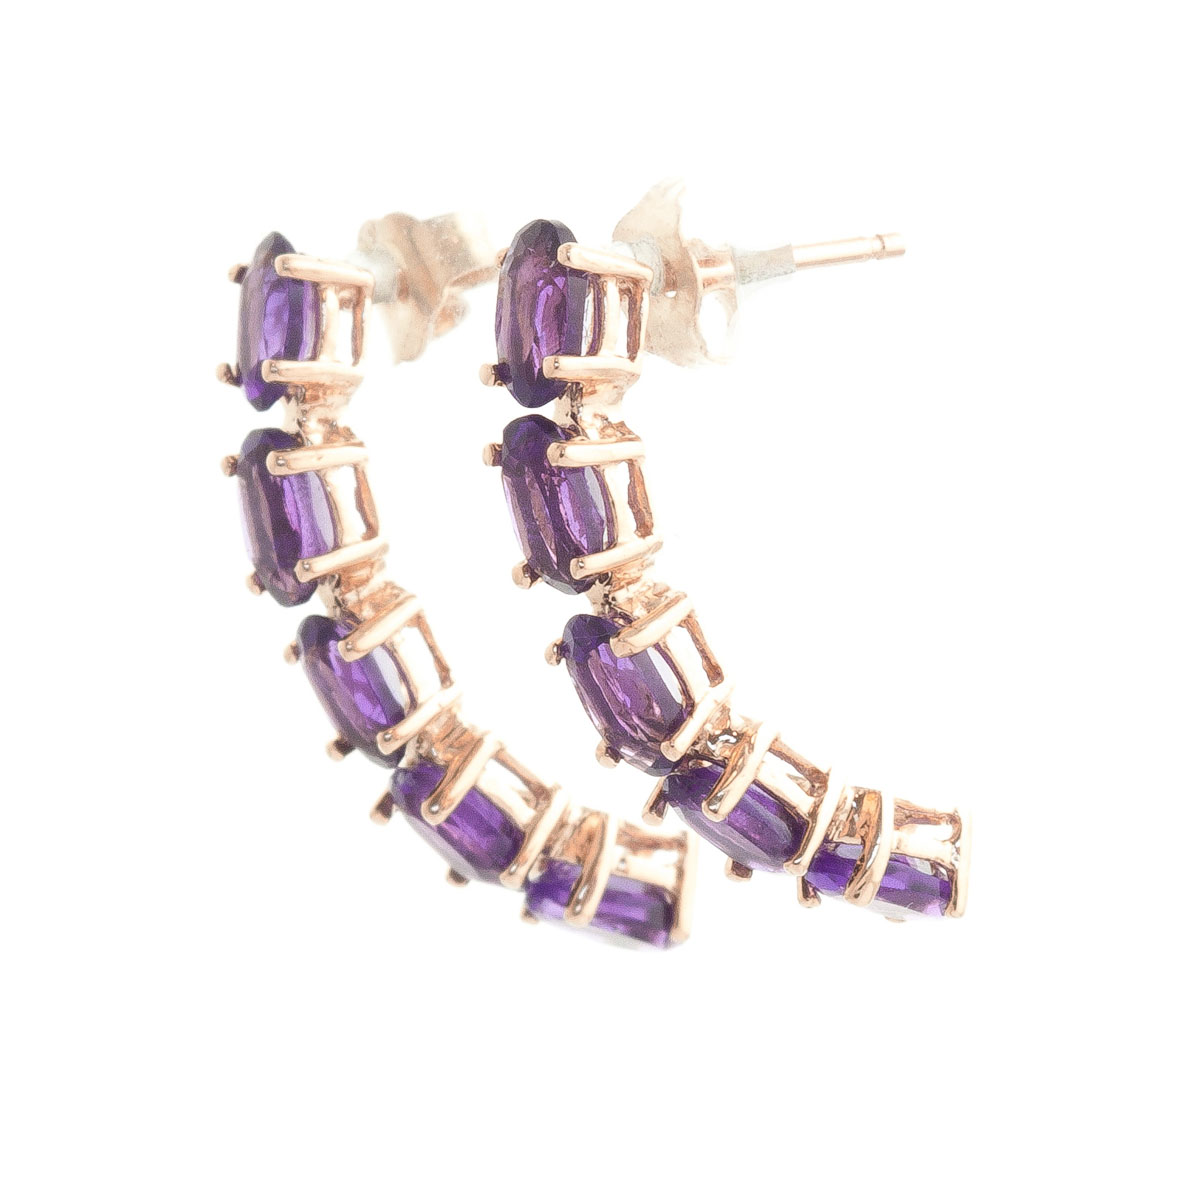 Amethyst Linear Stud Earrings 2.5 ctw in 9ct Rose Gold